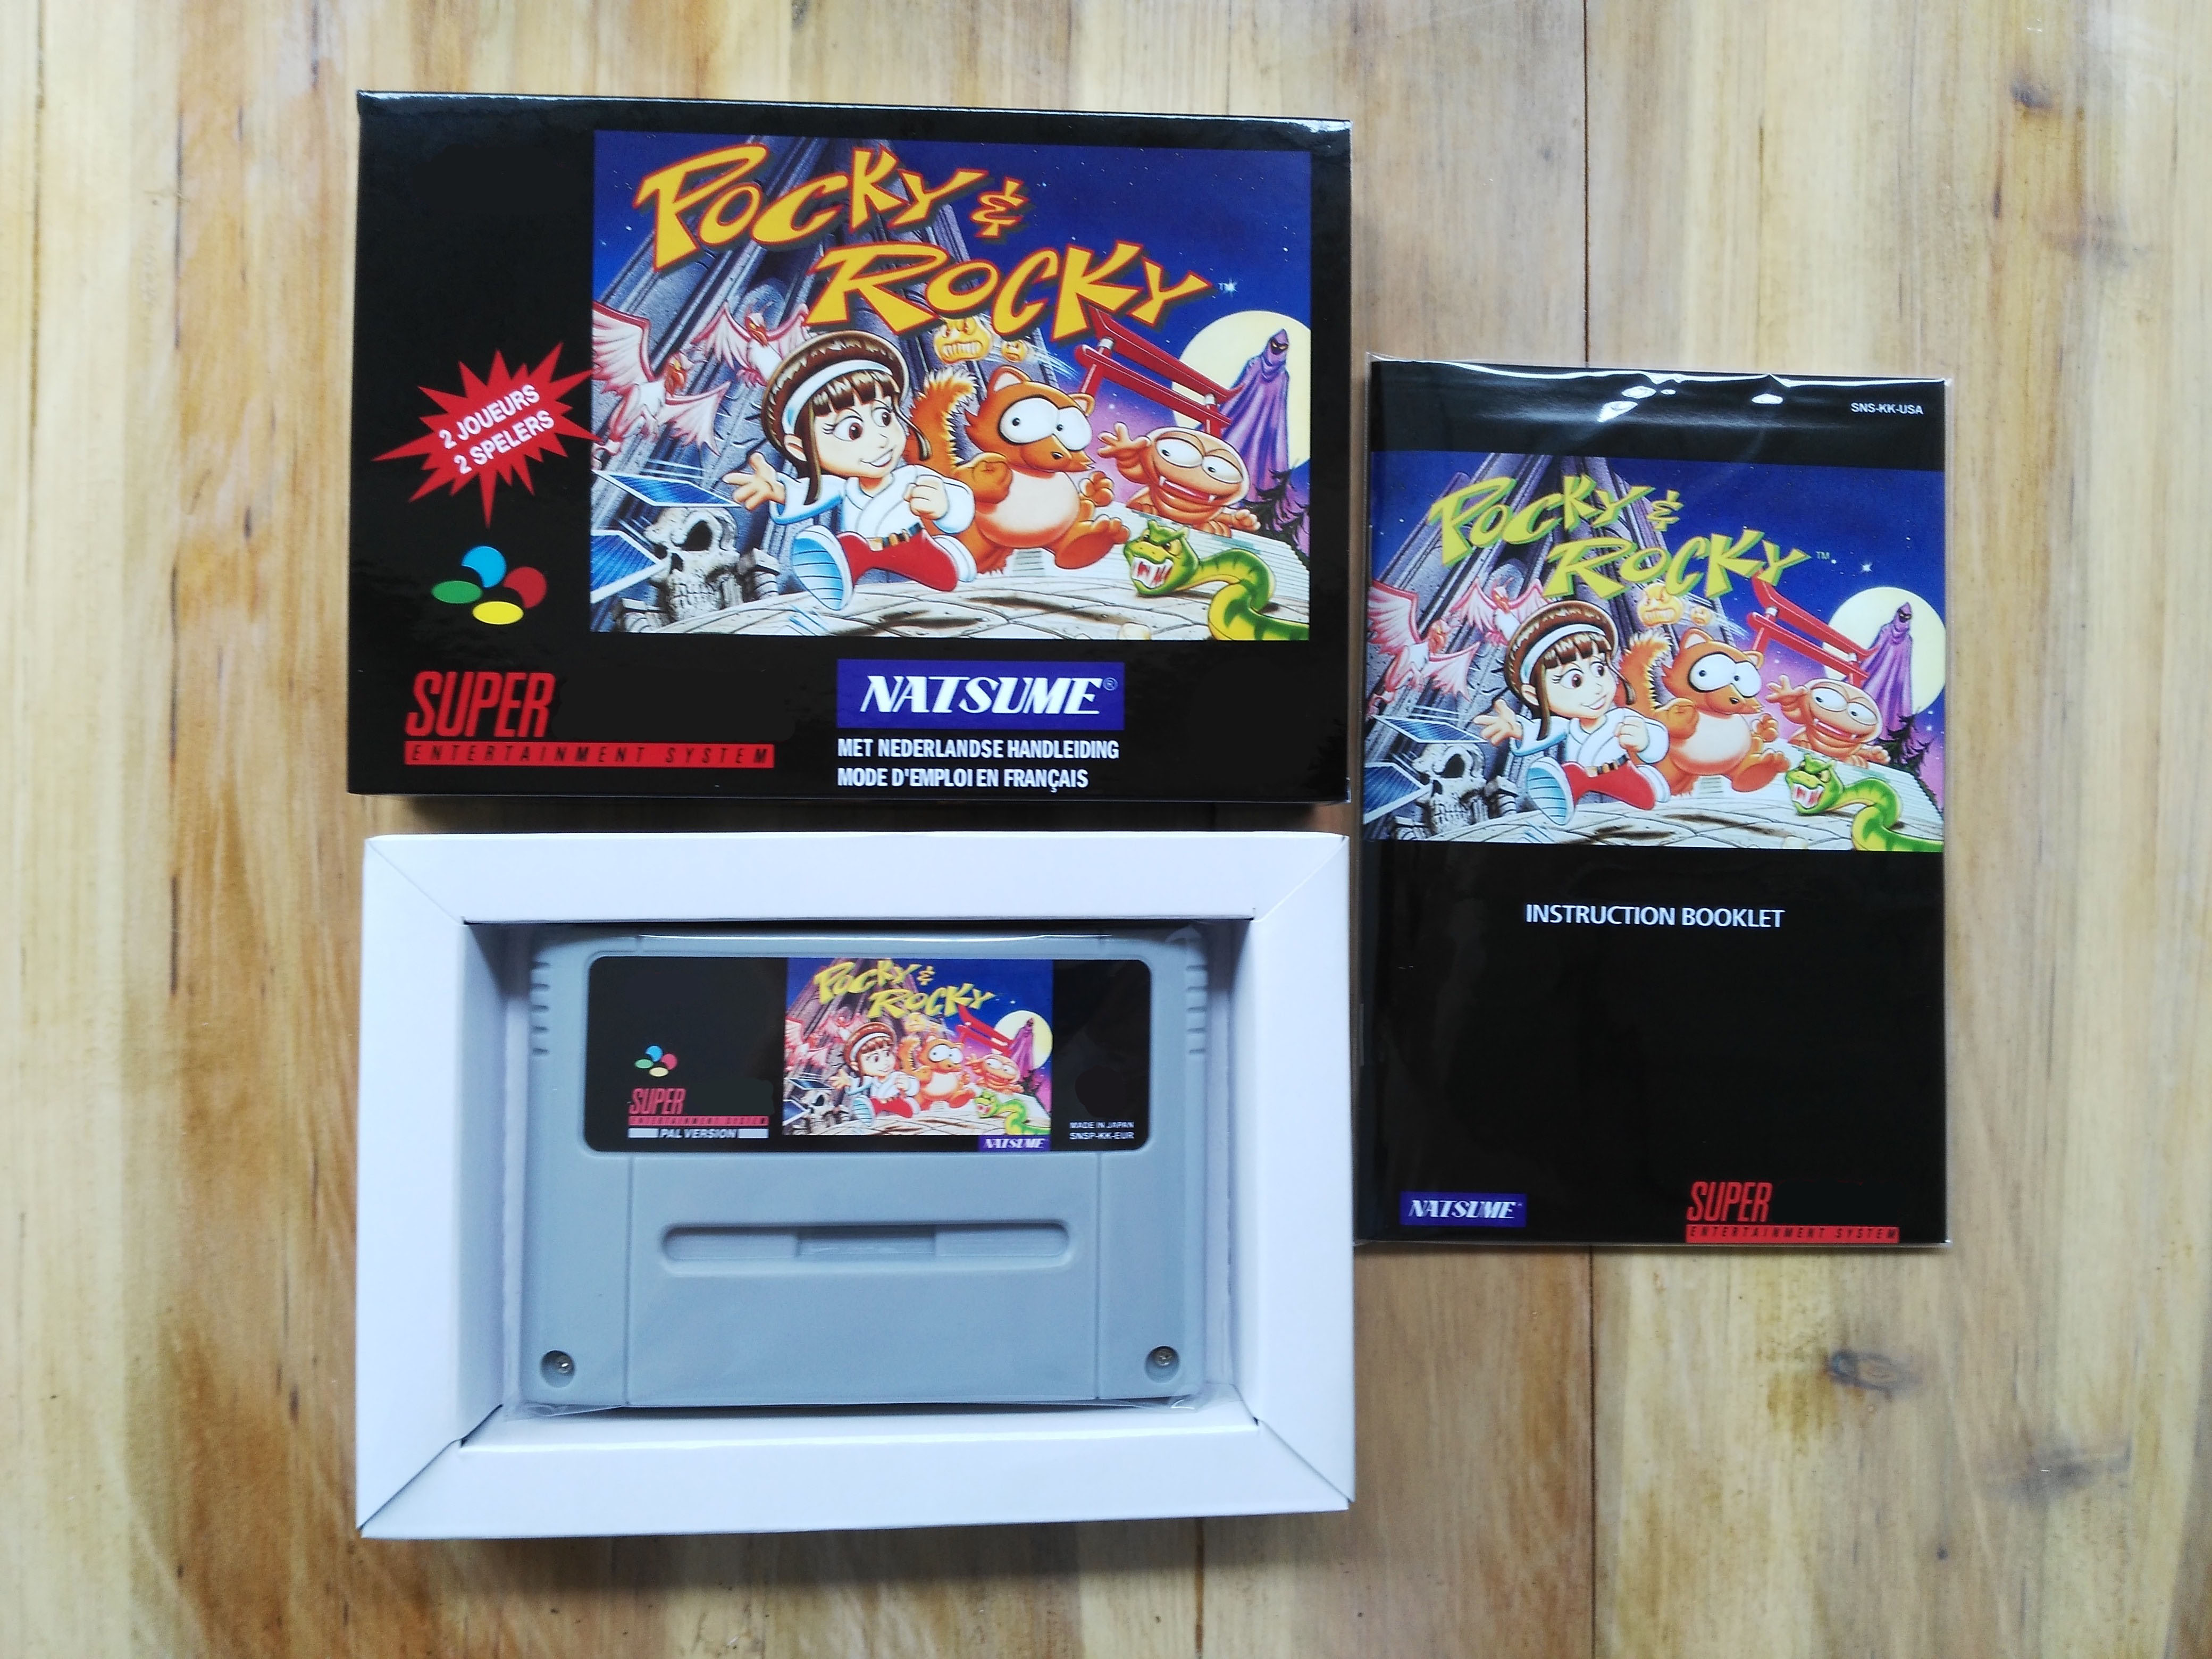 16Bit Games Pocky Rocky 1 PAL Version Box Manual Cartridge